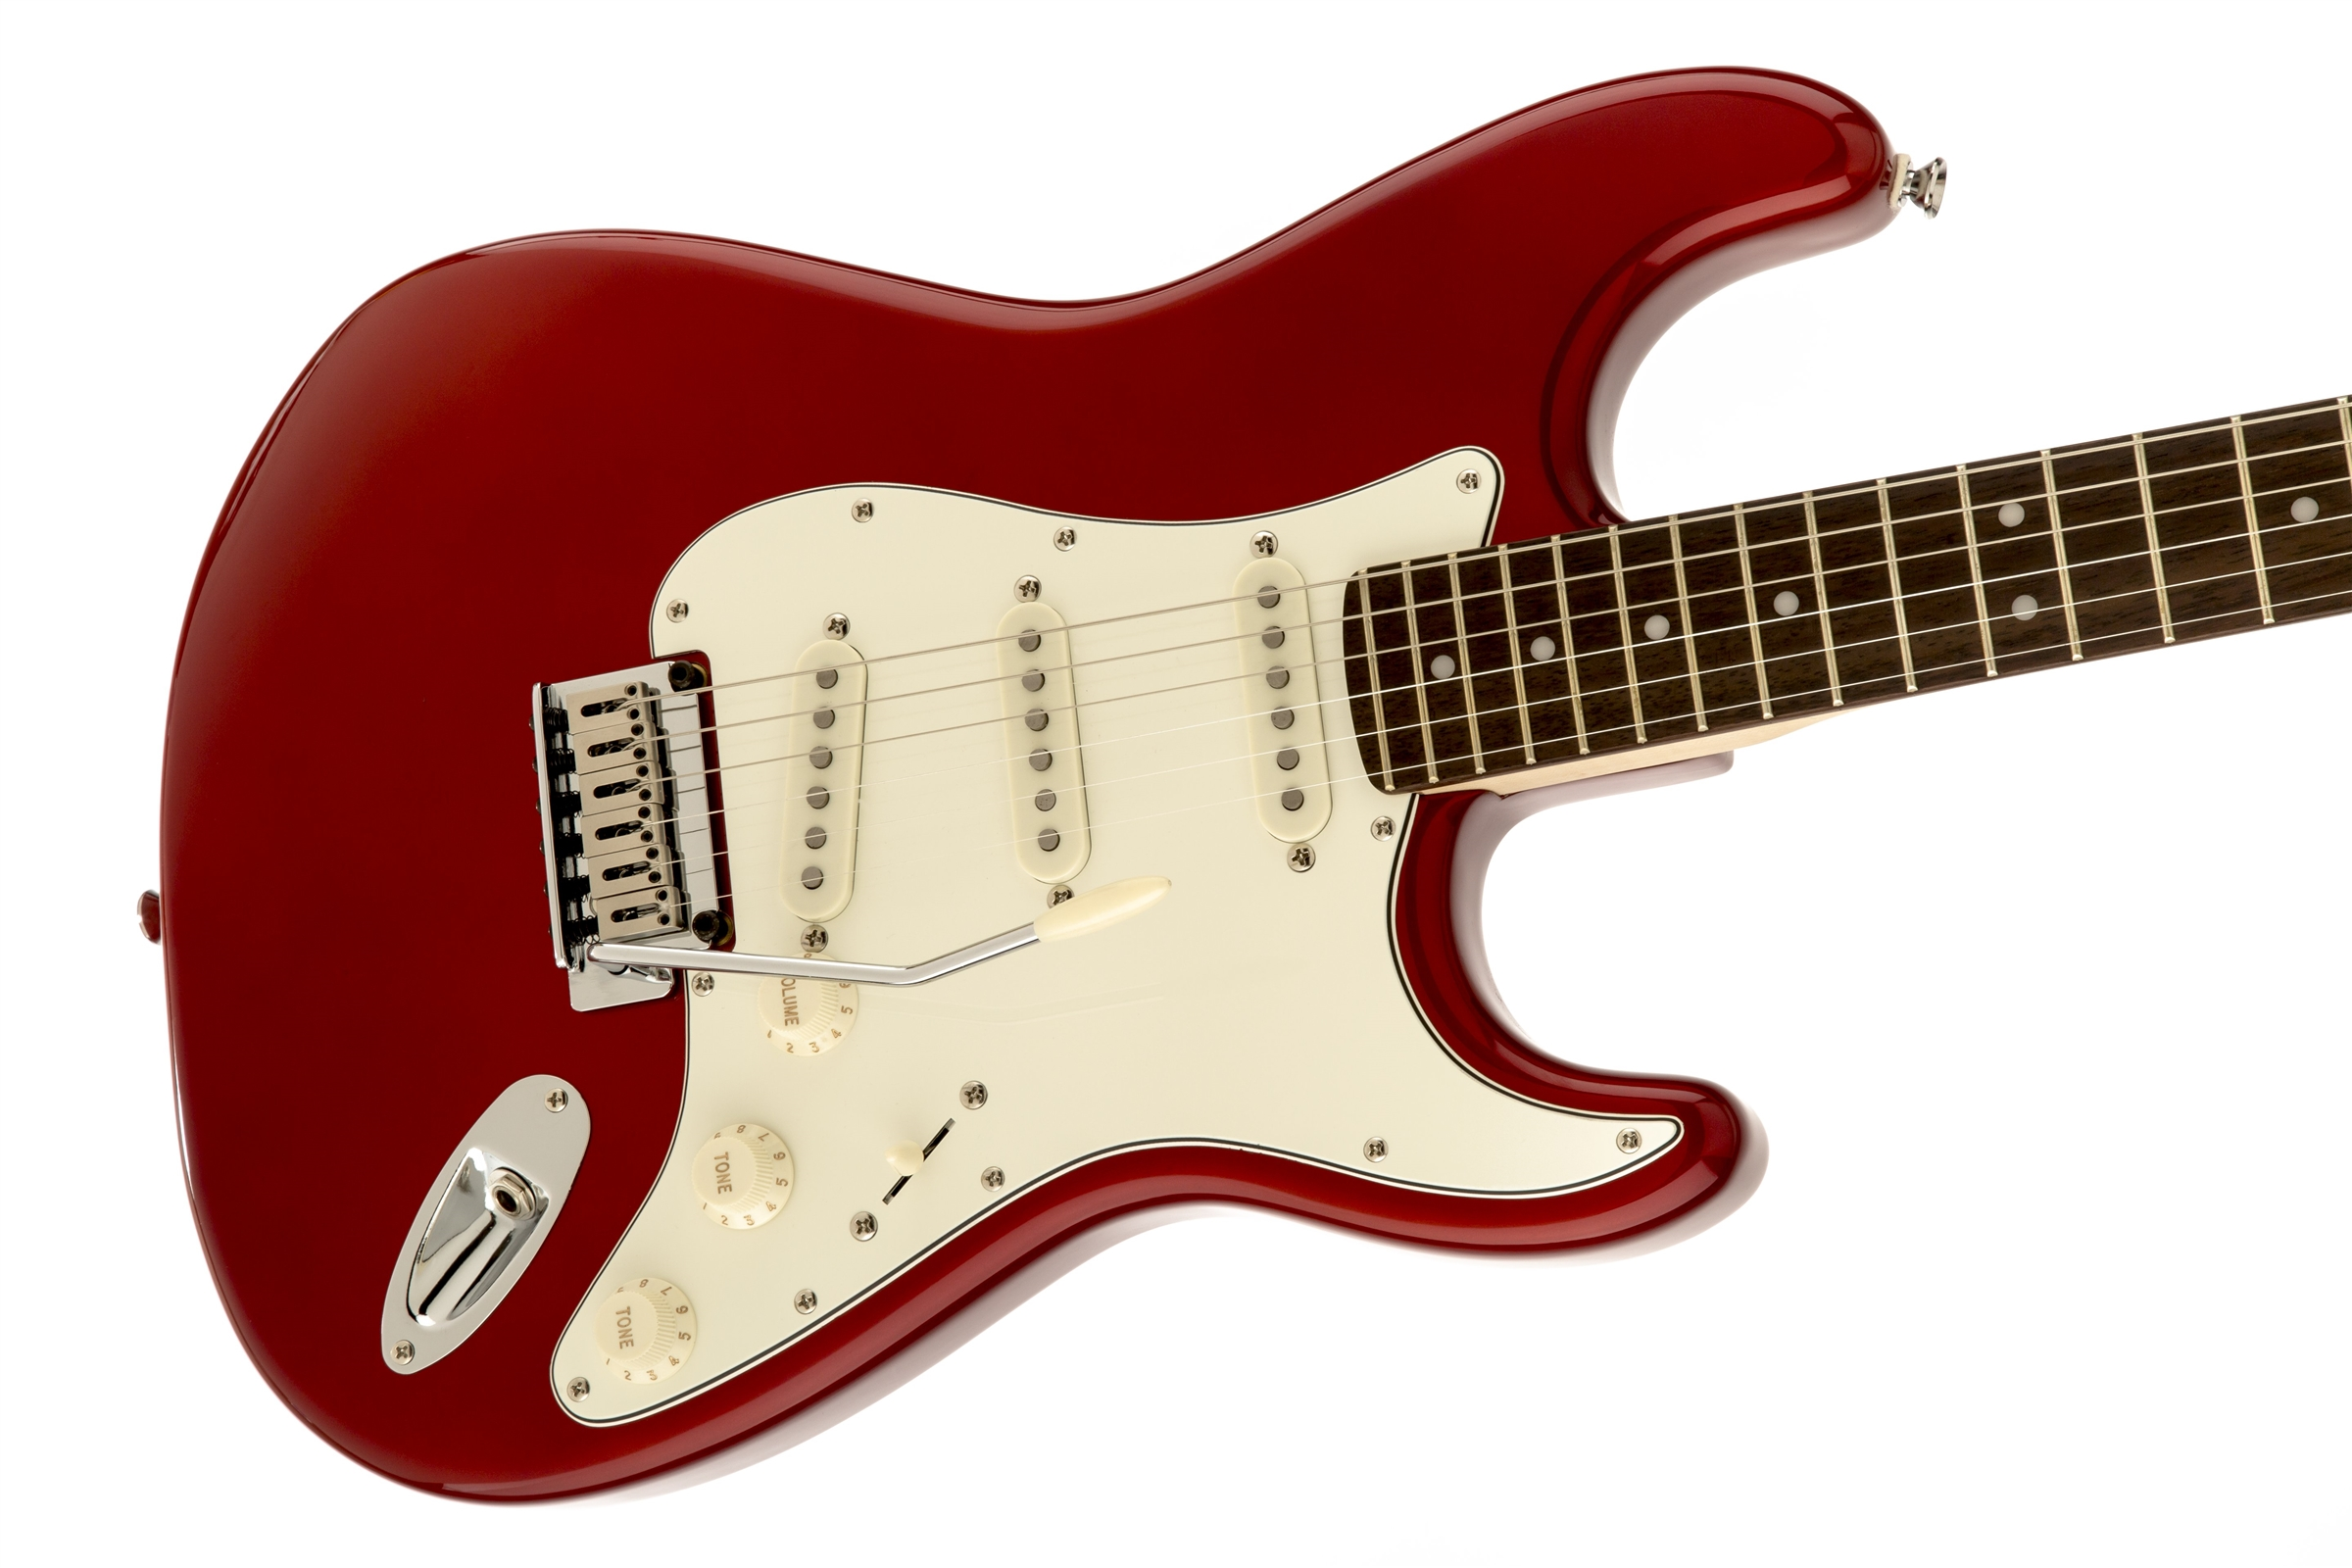 squier standard stratocaster rosewood fingerboard candy apple red squier electric guitars. Black Bedroom Furniture Sets. Home Design Ideas